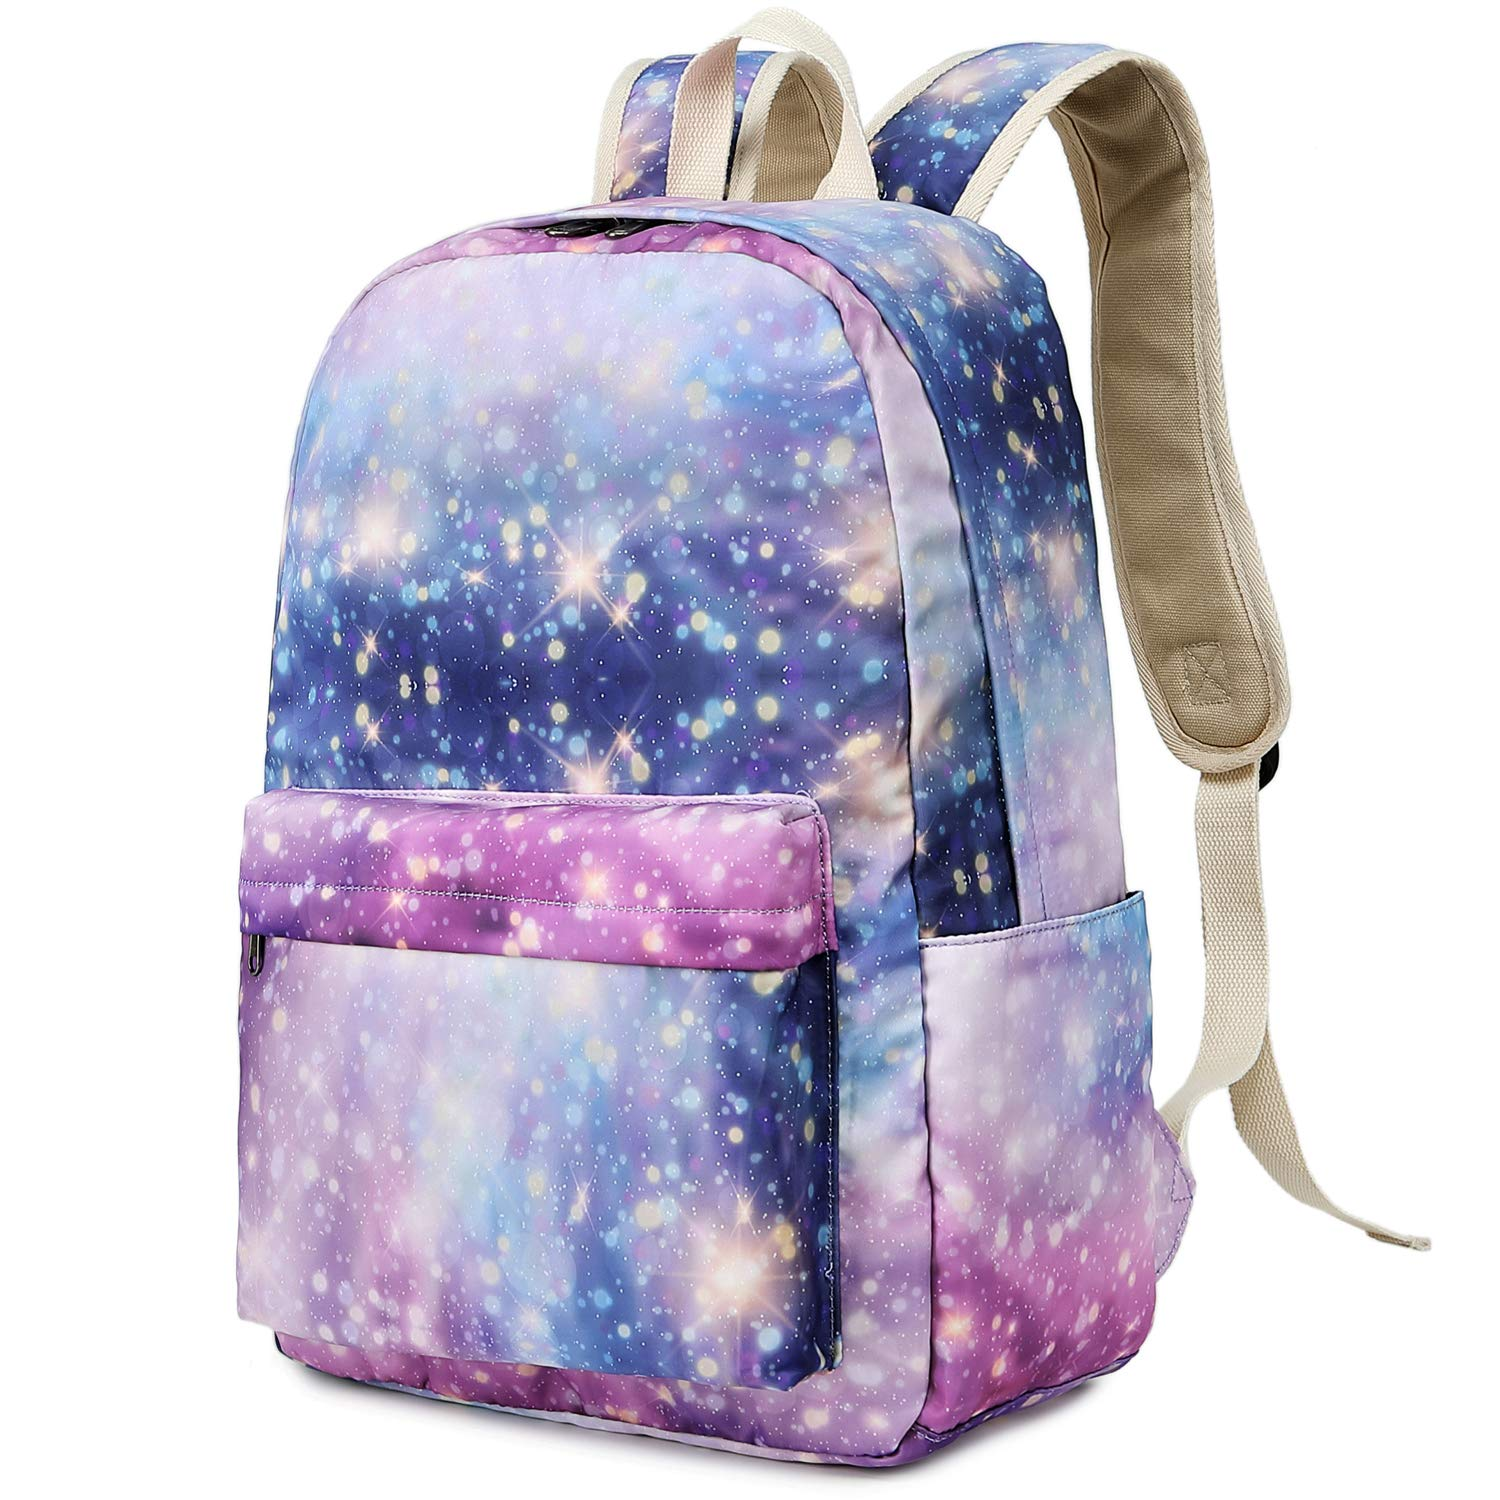 0a3f85bd18e1 Teens Backpack for School Girls Bookbag Middle School Student Schoolbag  Causal Travel Daypack (Star-Pink Purple)